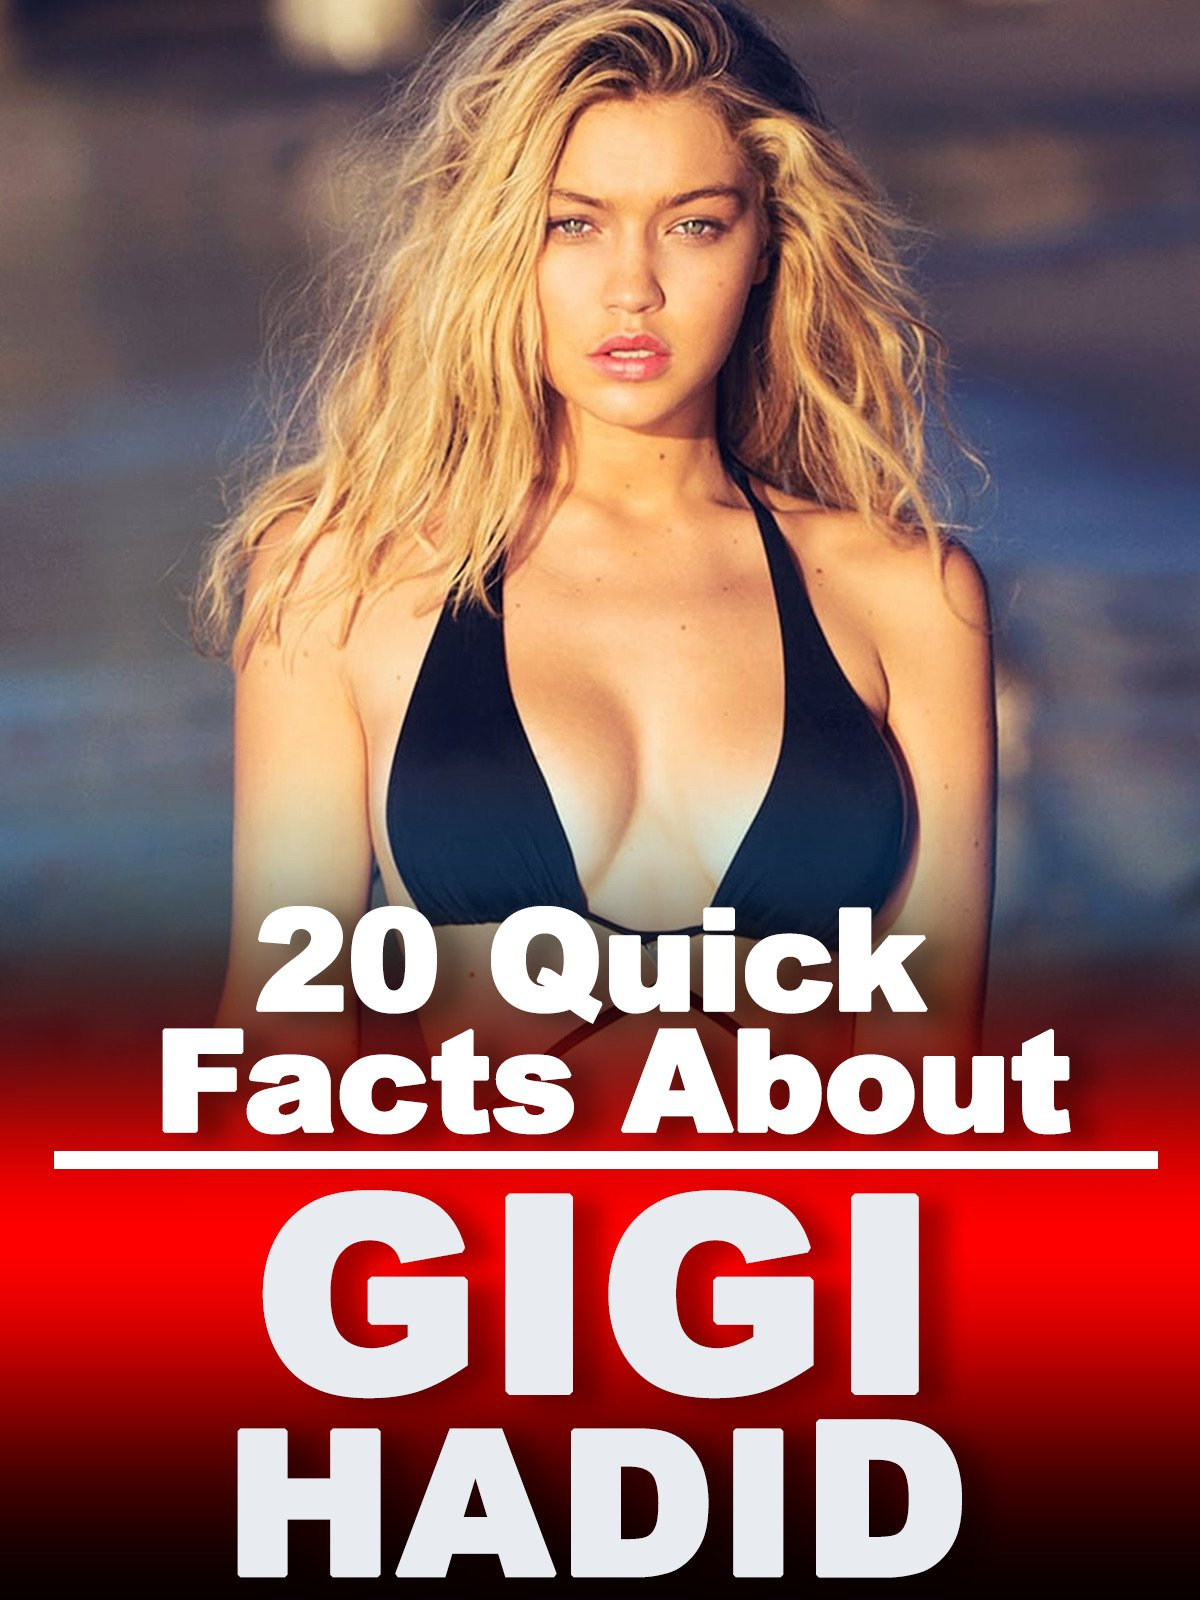 20 Quick Facts About Gigi Hadid